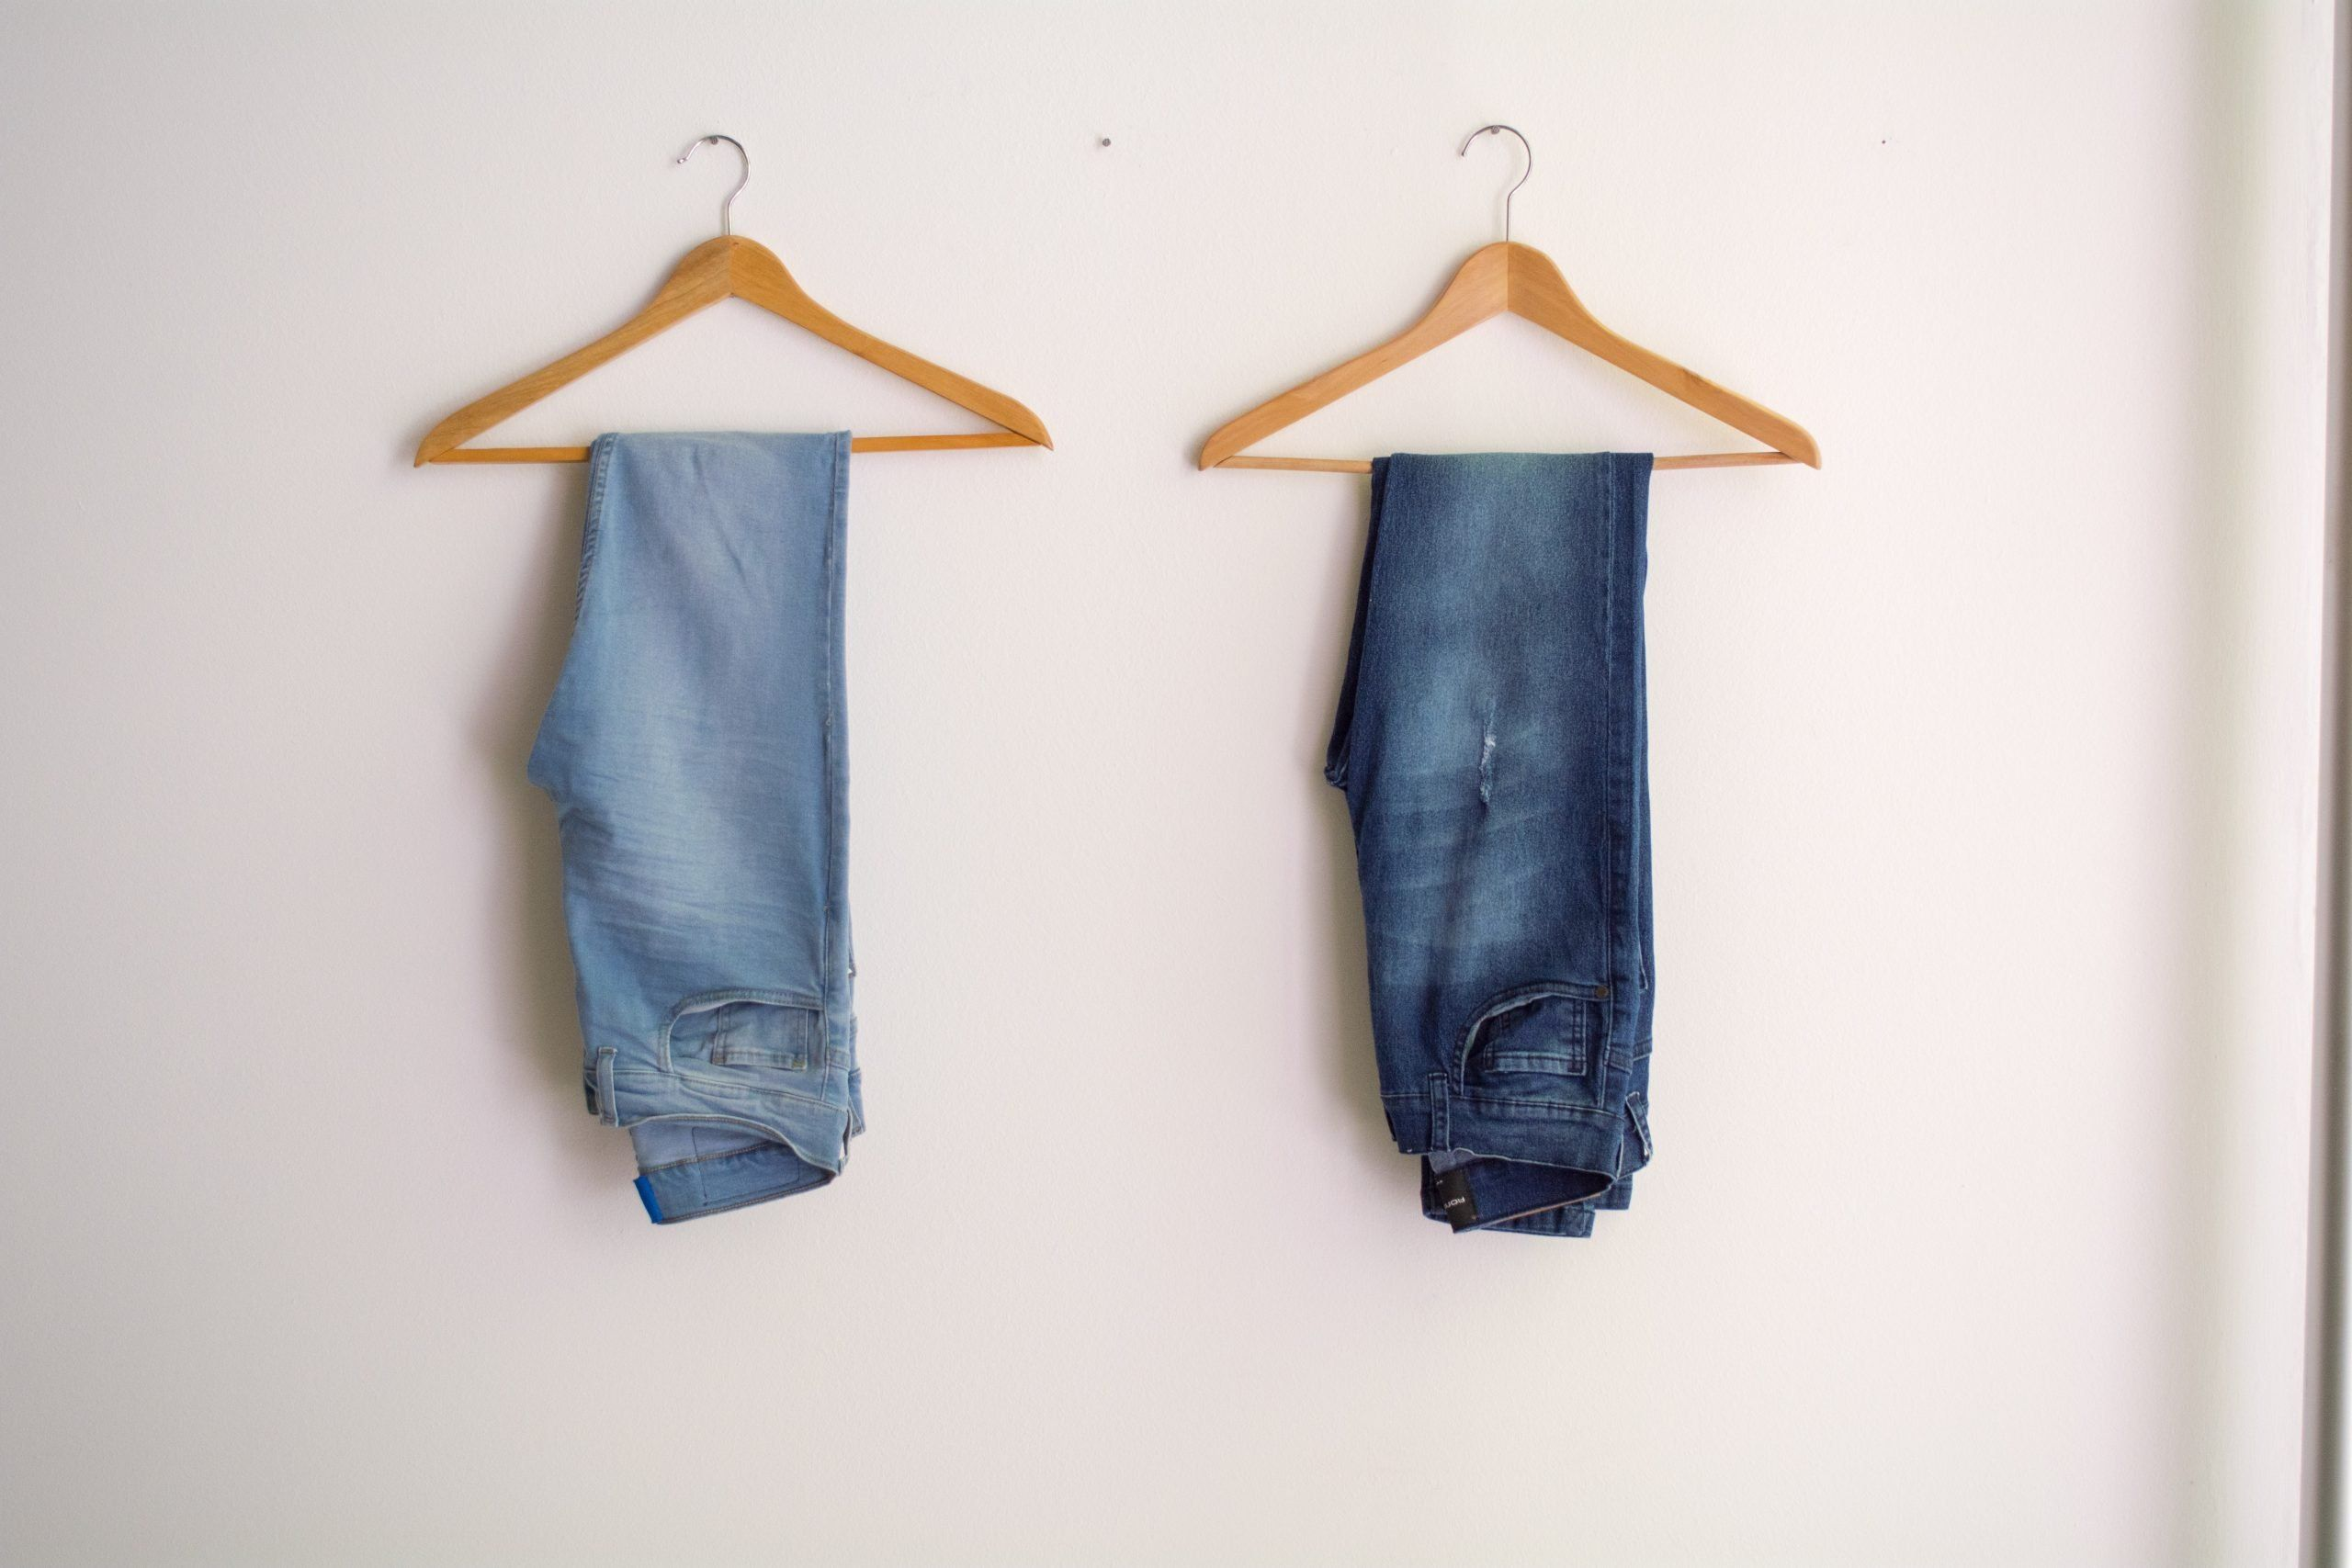 two-hanged-blue-stonewash-and-blue-jeans-1082528